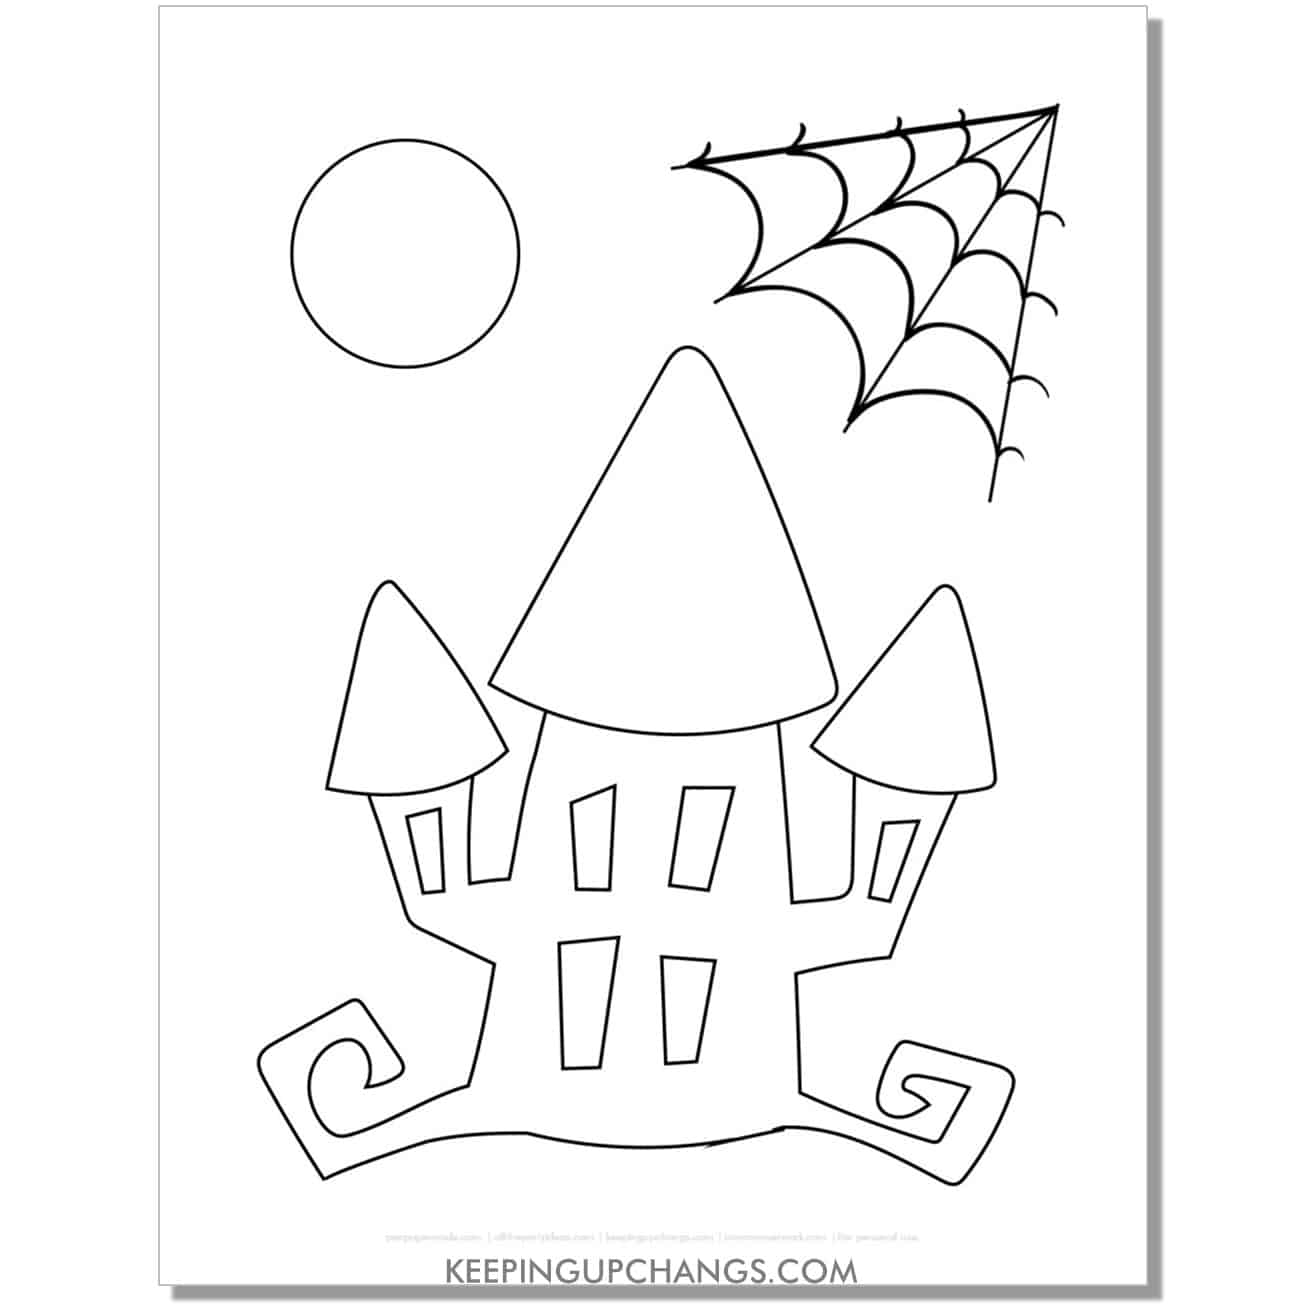 free haunted house halloween coloring page for toddlers.